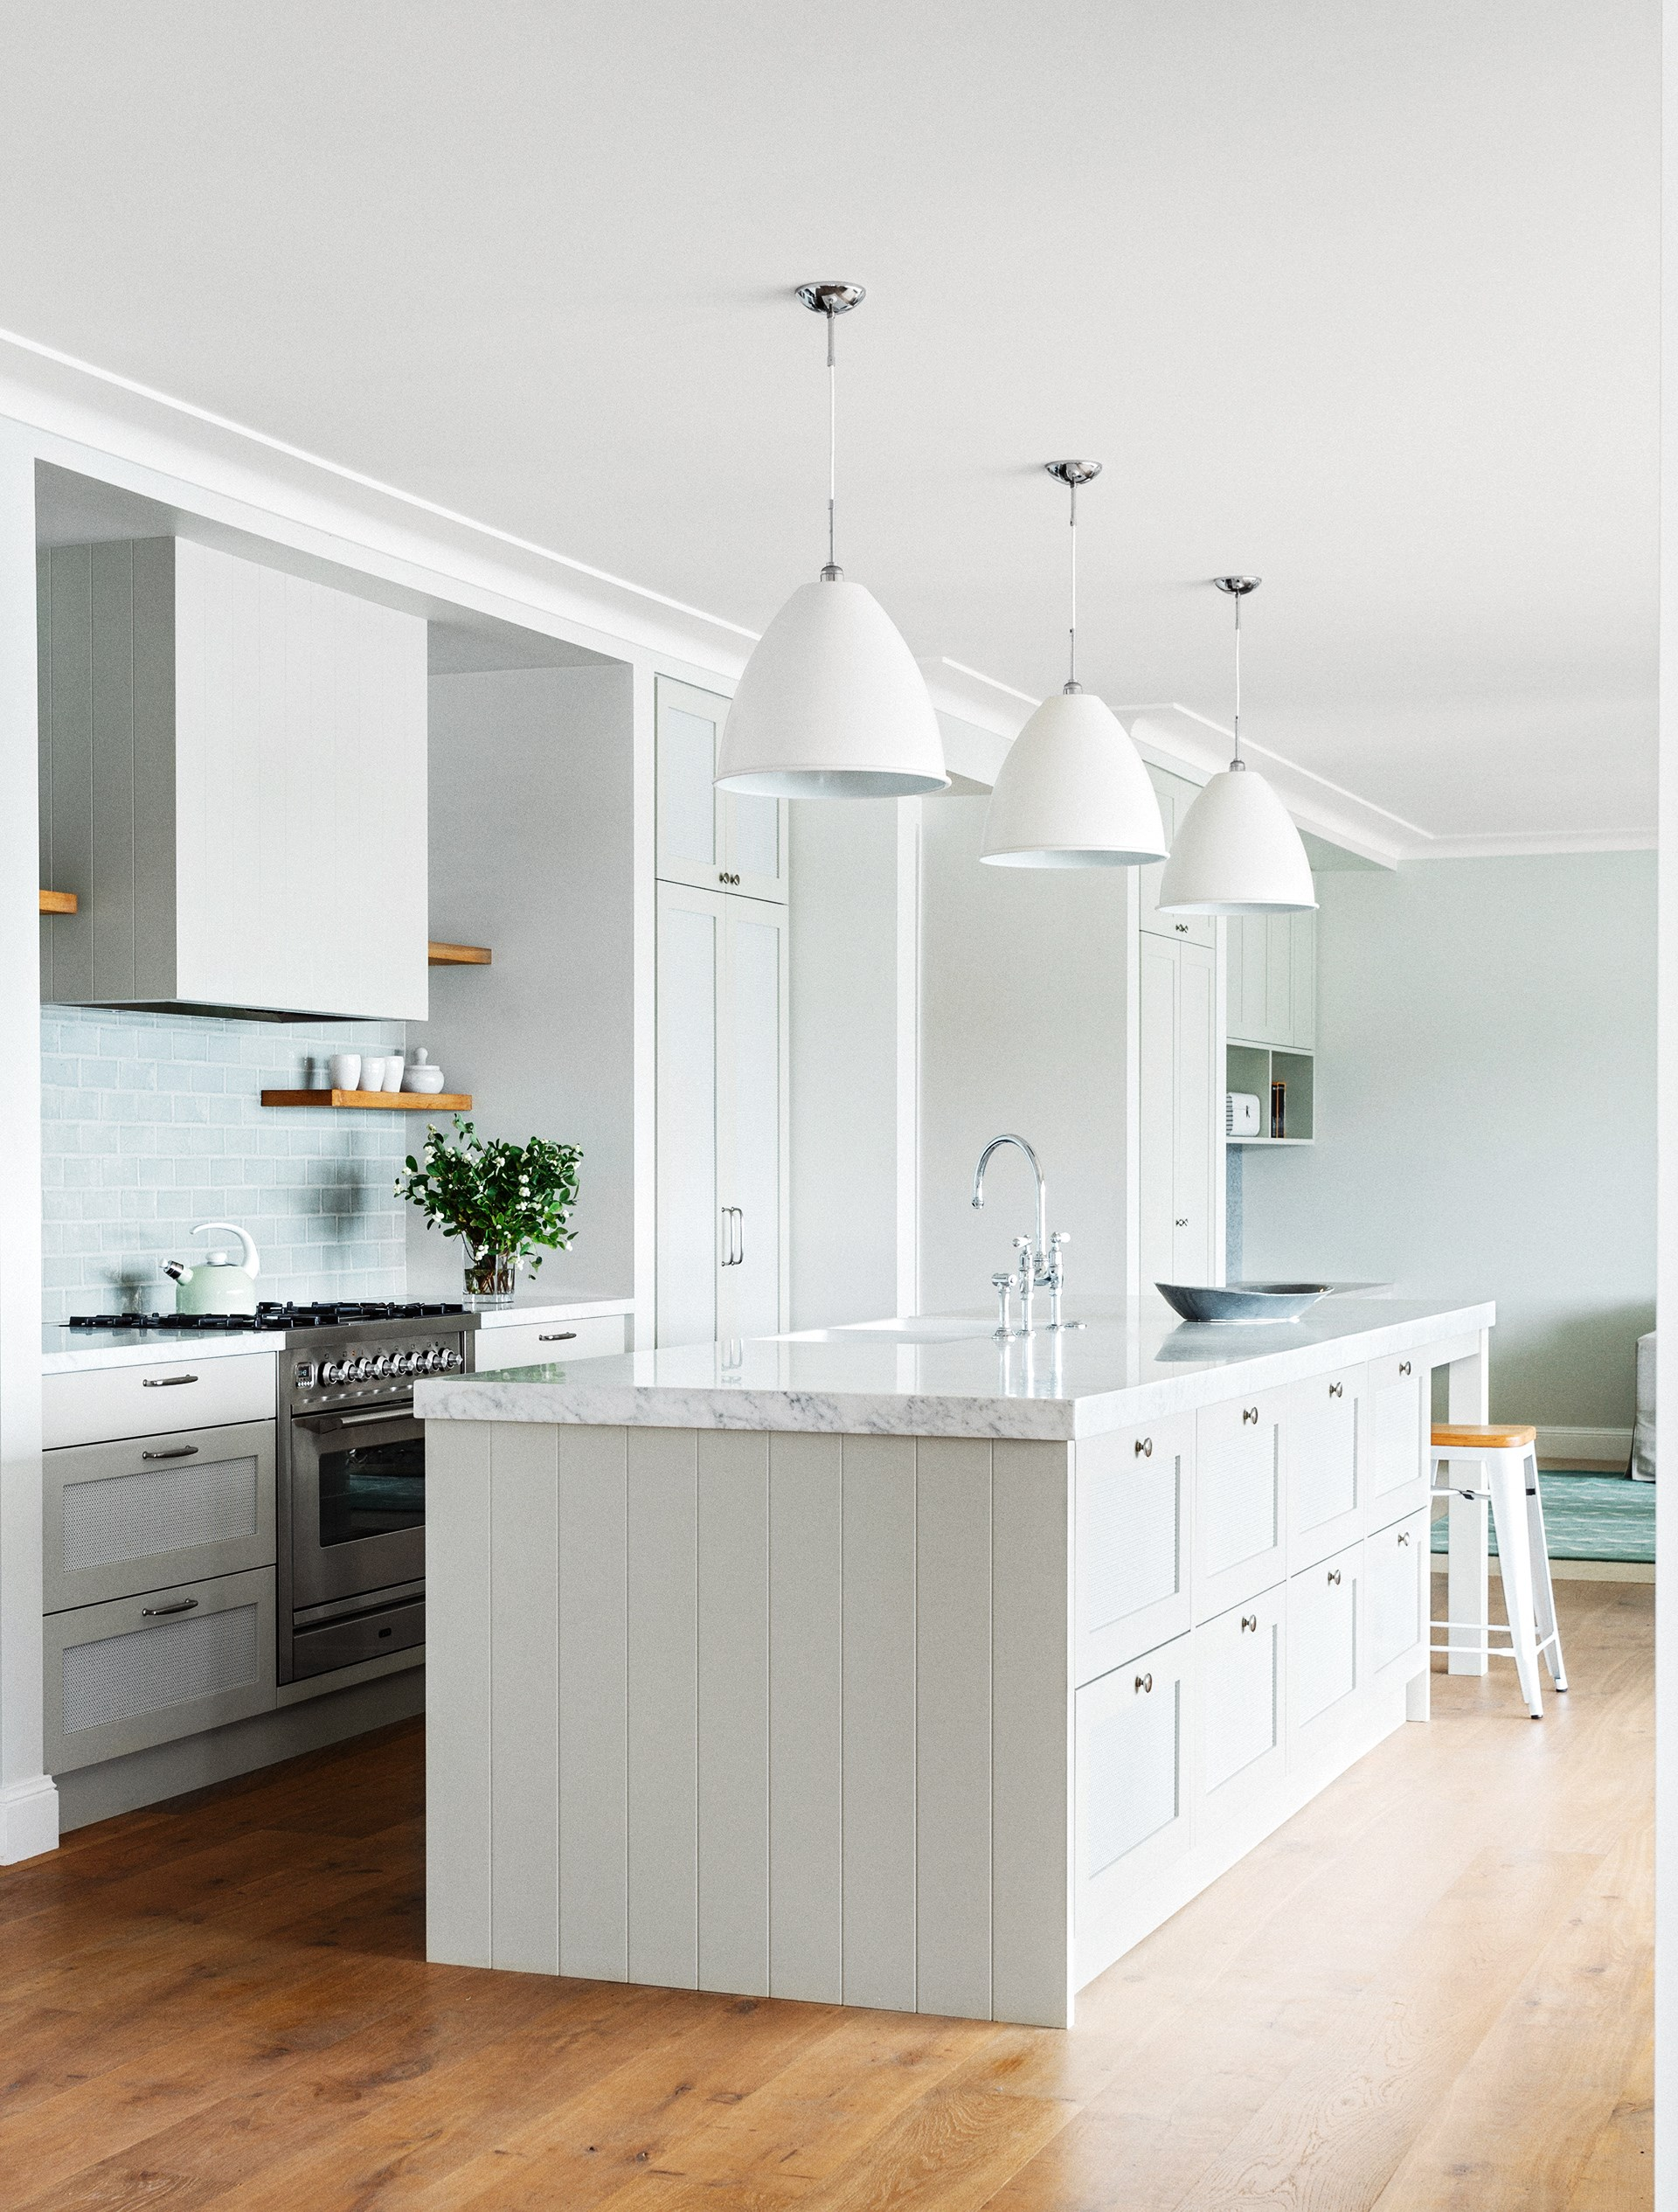 """When the owners of this Northern Beaches home renovated three years after moving in, bringing in a beachy feel was top of their list. In the kitchen, **pendants** from [Cult](http://cultdesign.com.au/?utm_campaign=supplier/